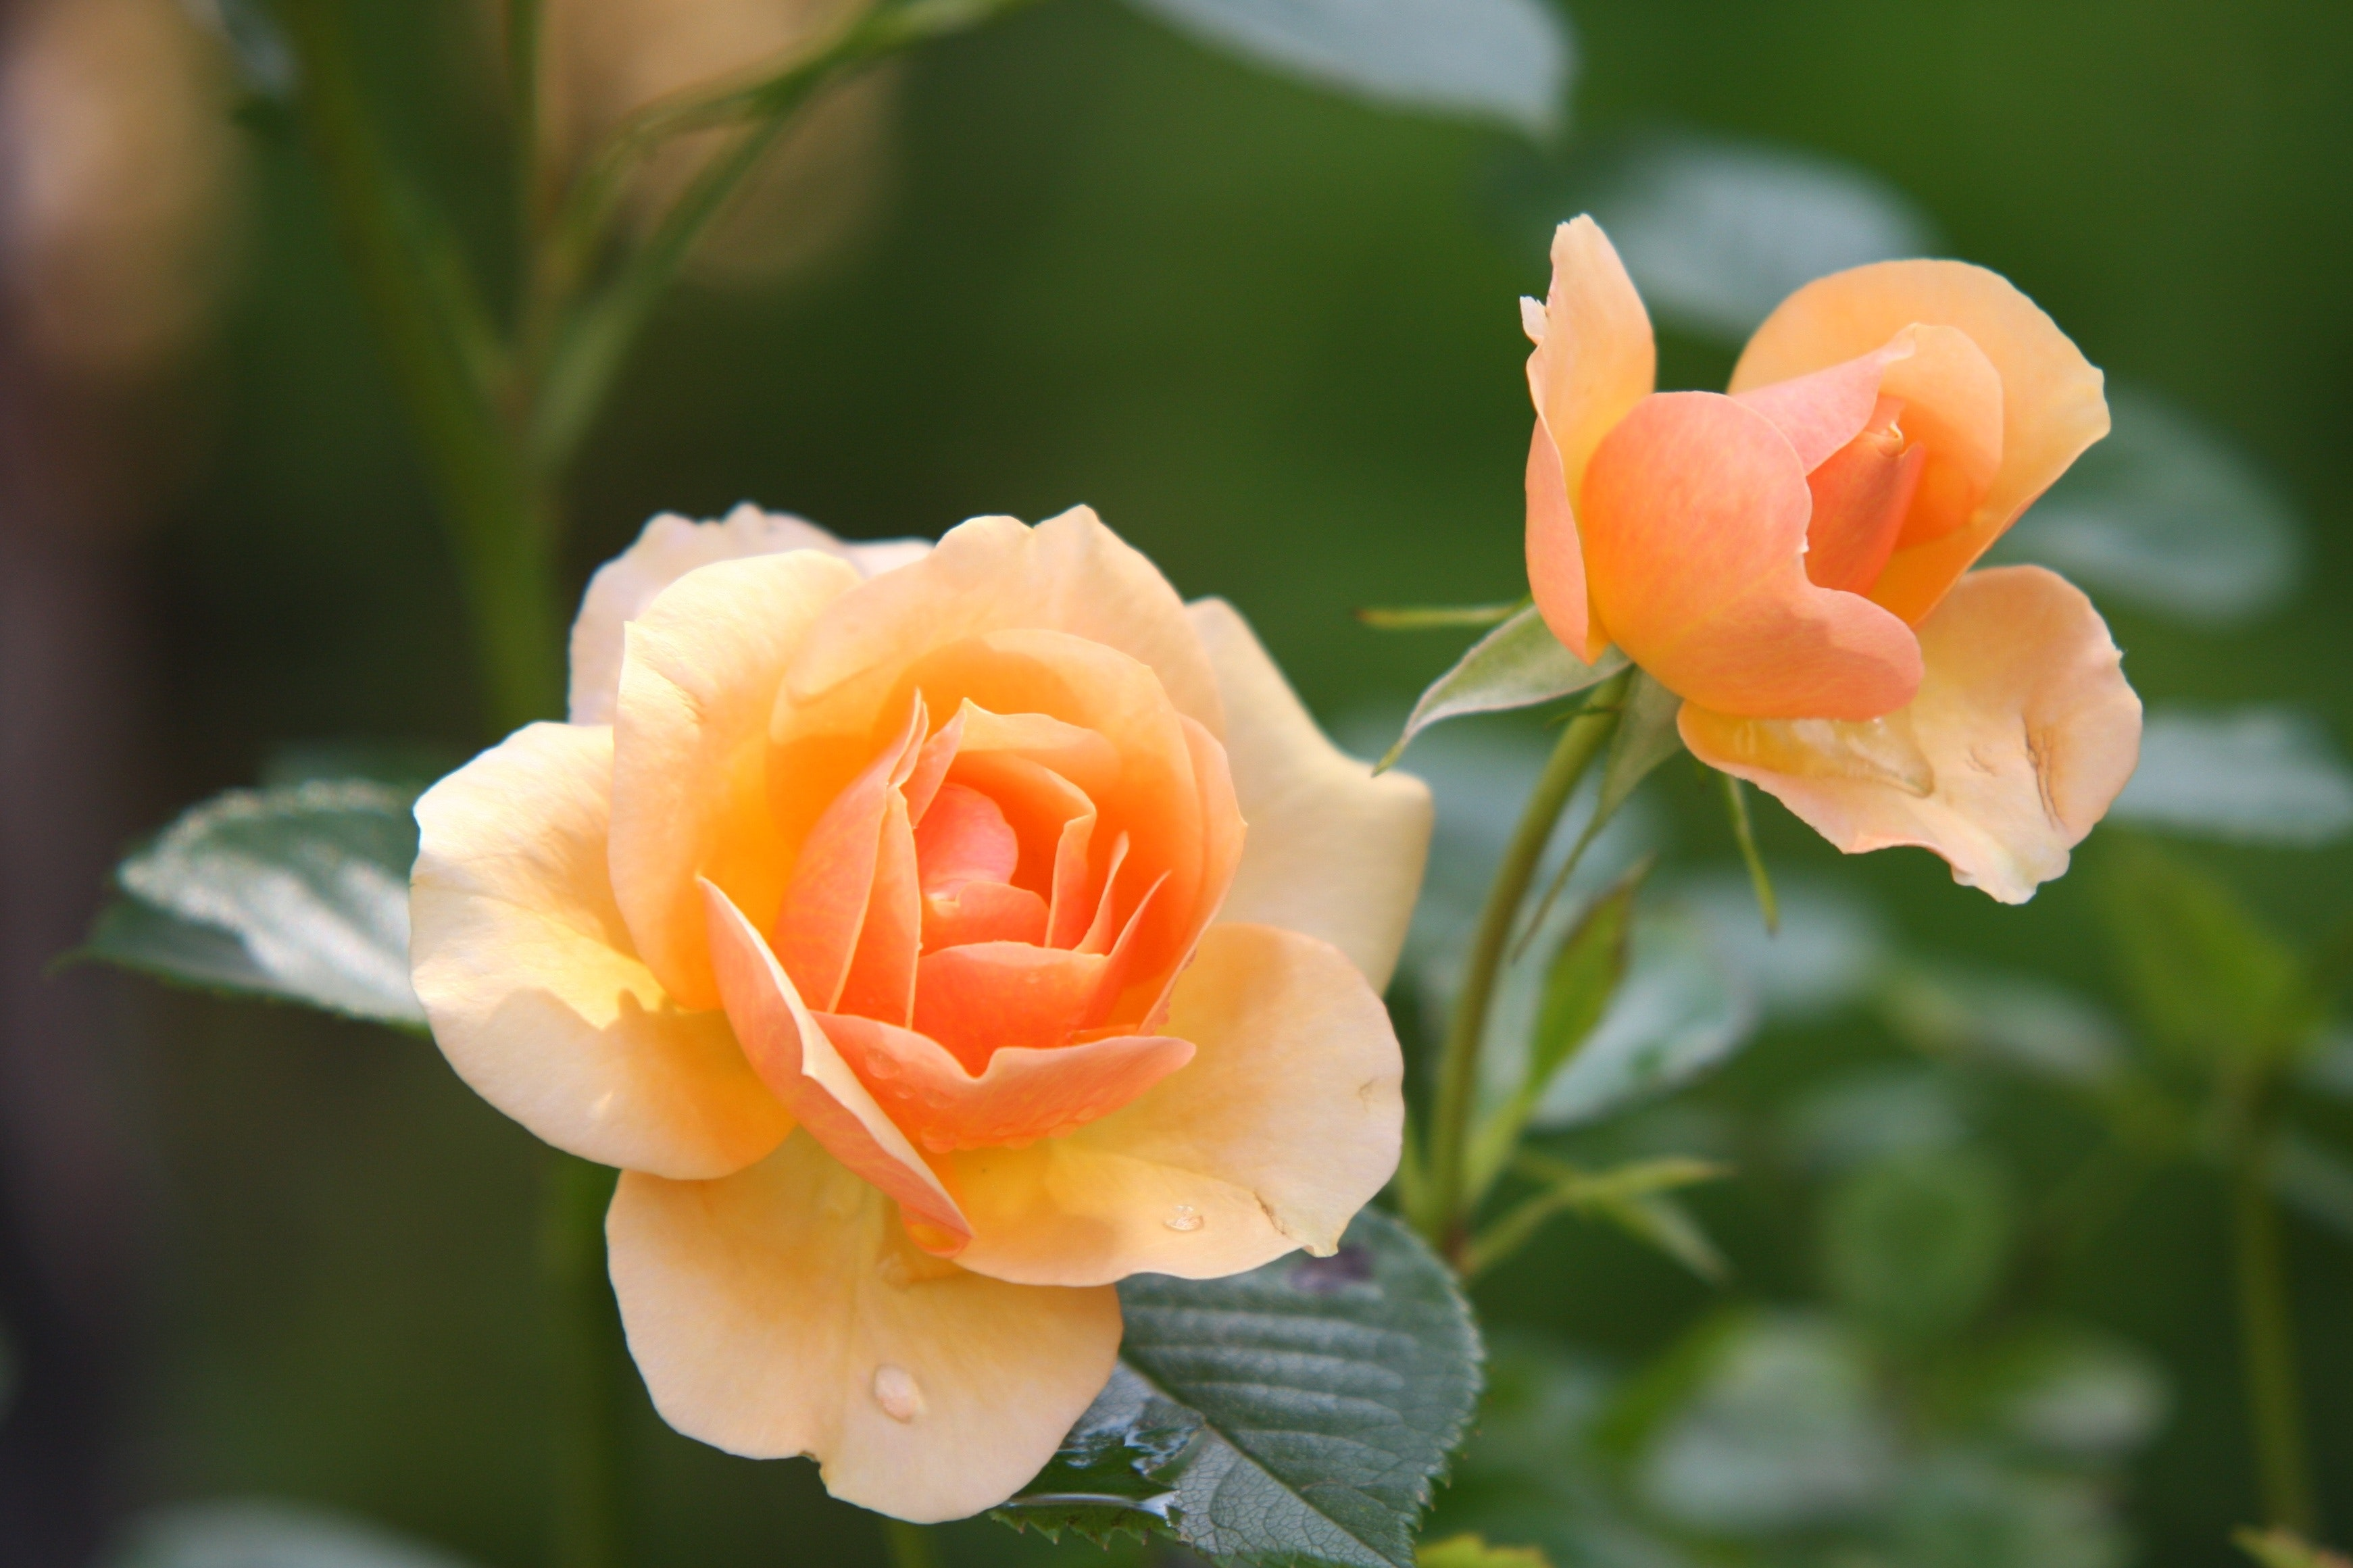 Orange Rose Flower In Bloom During Daytime Free Stock Photo